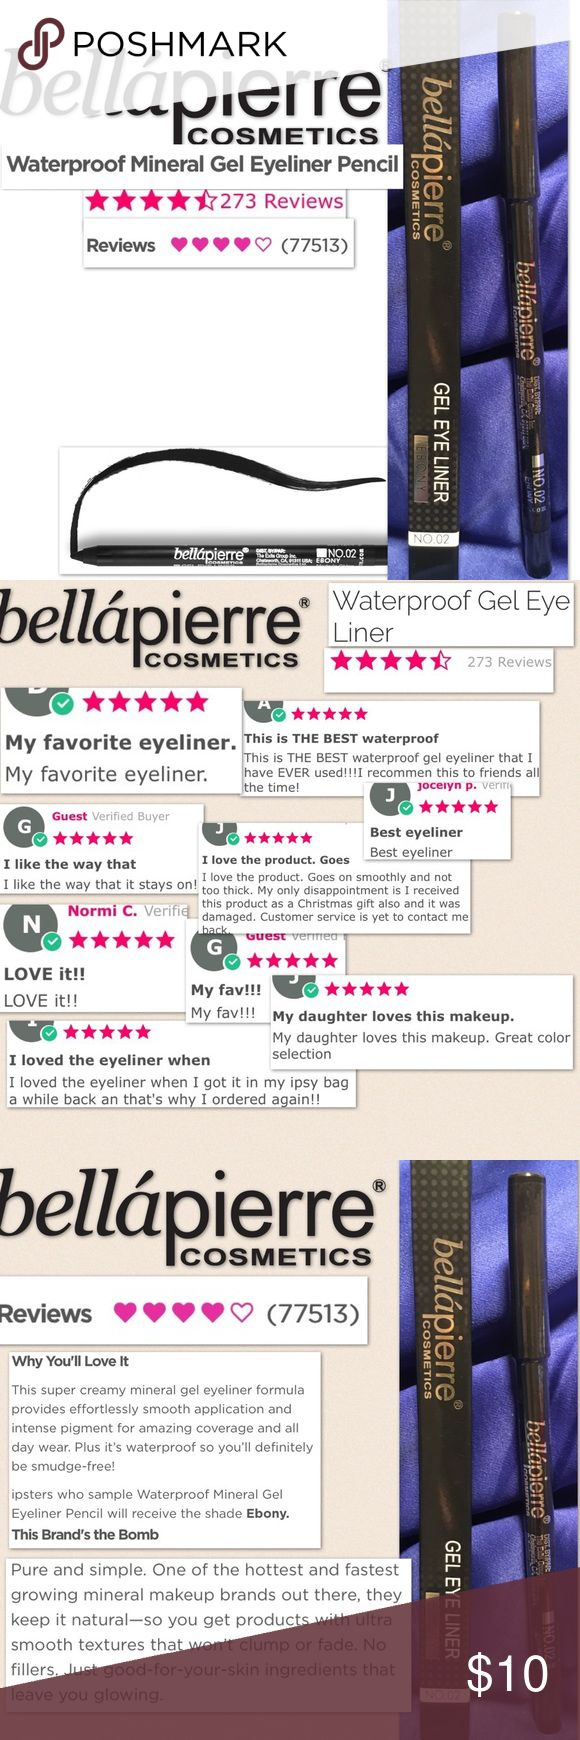 NEW Bellapierre Cosmetics Mineral WP Gel Liner Brand new in box, sealed Bellapierre Cosmetics Mineral Waterproof Gel Eye Liner in Ebony-true black Creamy, preservative free, hypoallergenic, safe for all skin types  made w/ Pure 100% Minerals, Natural Waxes, antioxidants Over 77,000 positive reviews! Full size -- ~recent product reviews snapshot in Pic 2 ~product info +description in pic 3  Sephora Ipsy Bundle lot beauty anti-aging ulta Natural organic cosmetics cult Sephora favorite Facial…